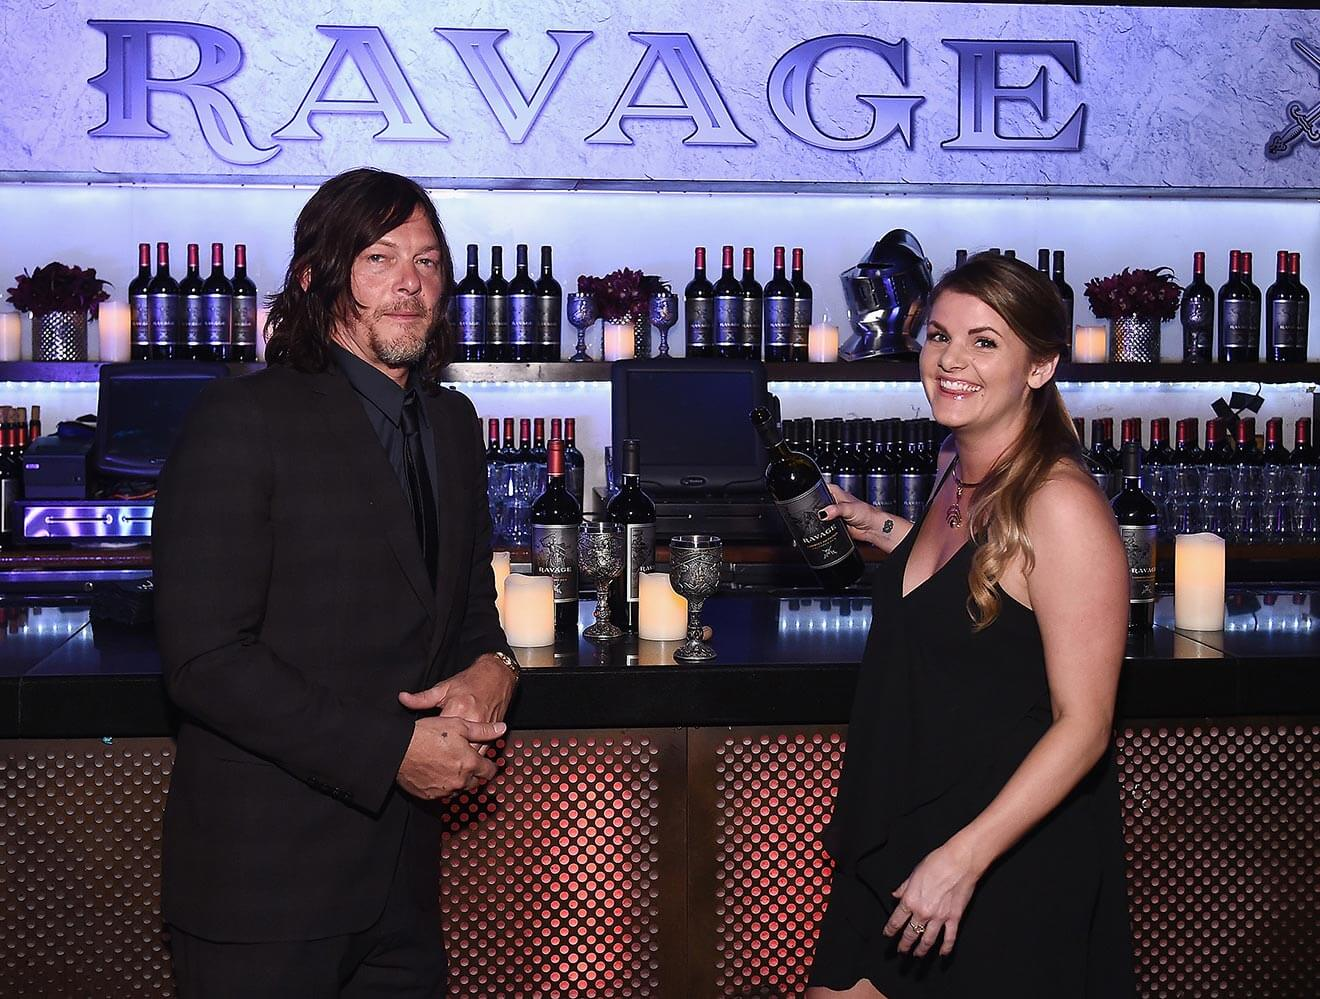 Norman Reedus and Winemaker Bryce Willingham at Ravage Bar for Comic Con Heroes After Dark